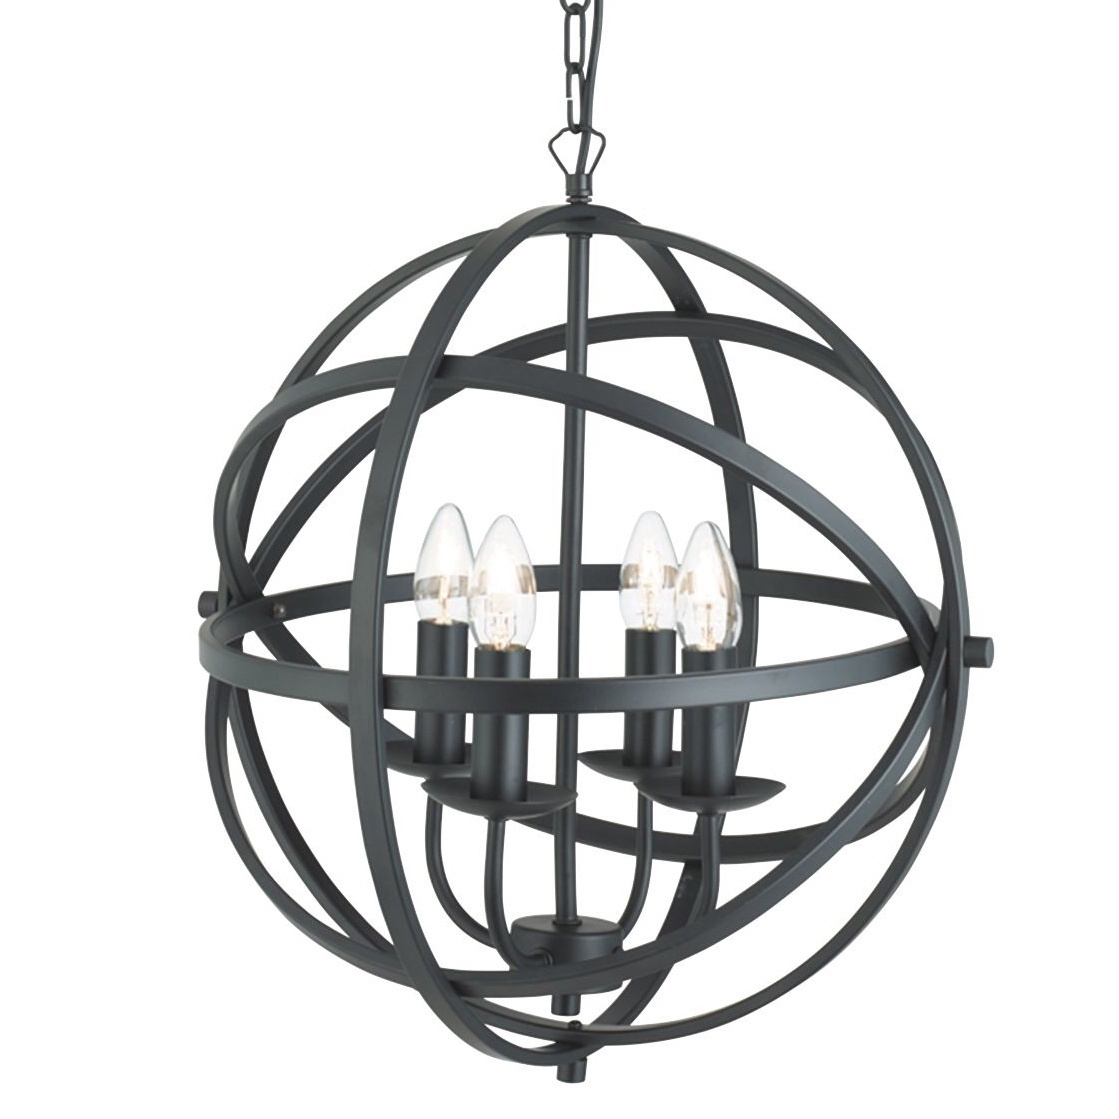 Large Armillary chandelier